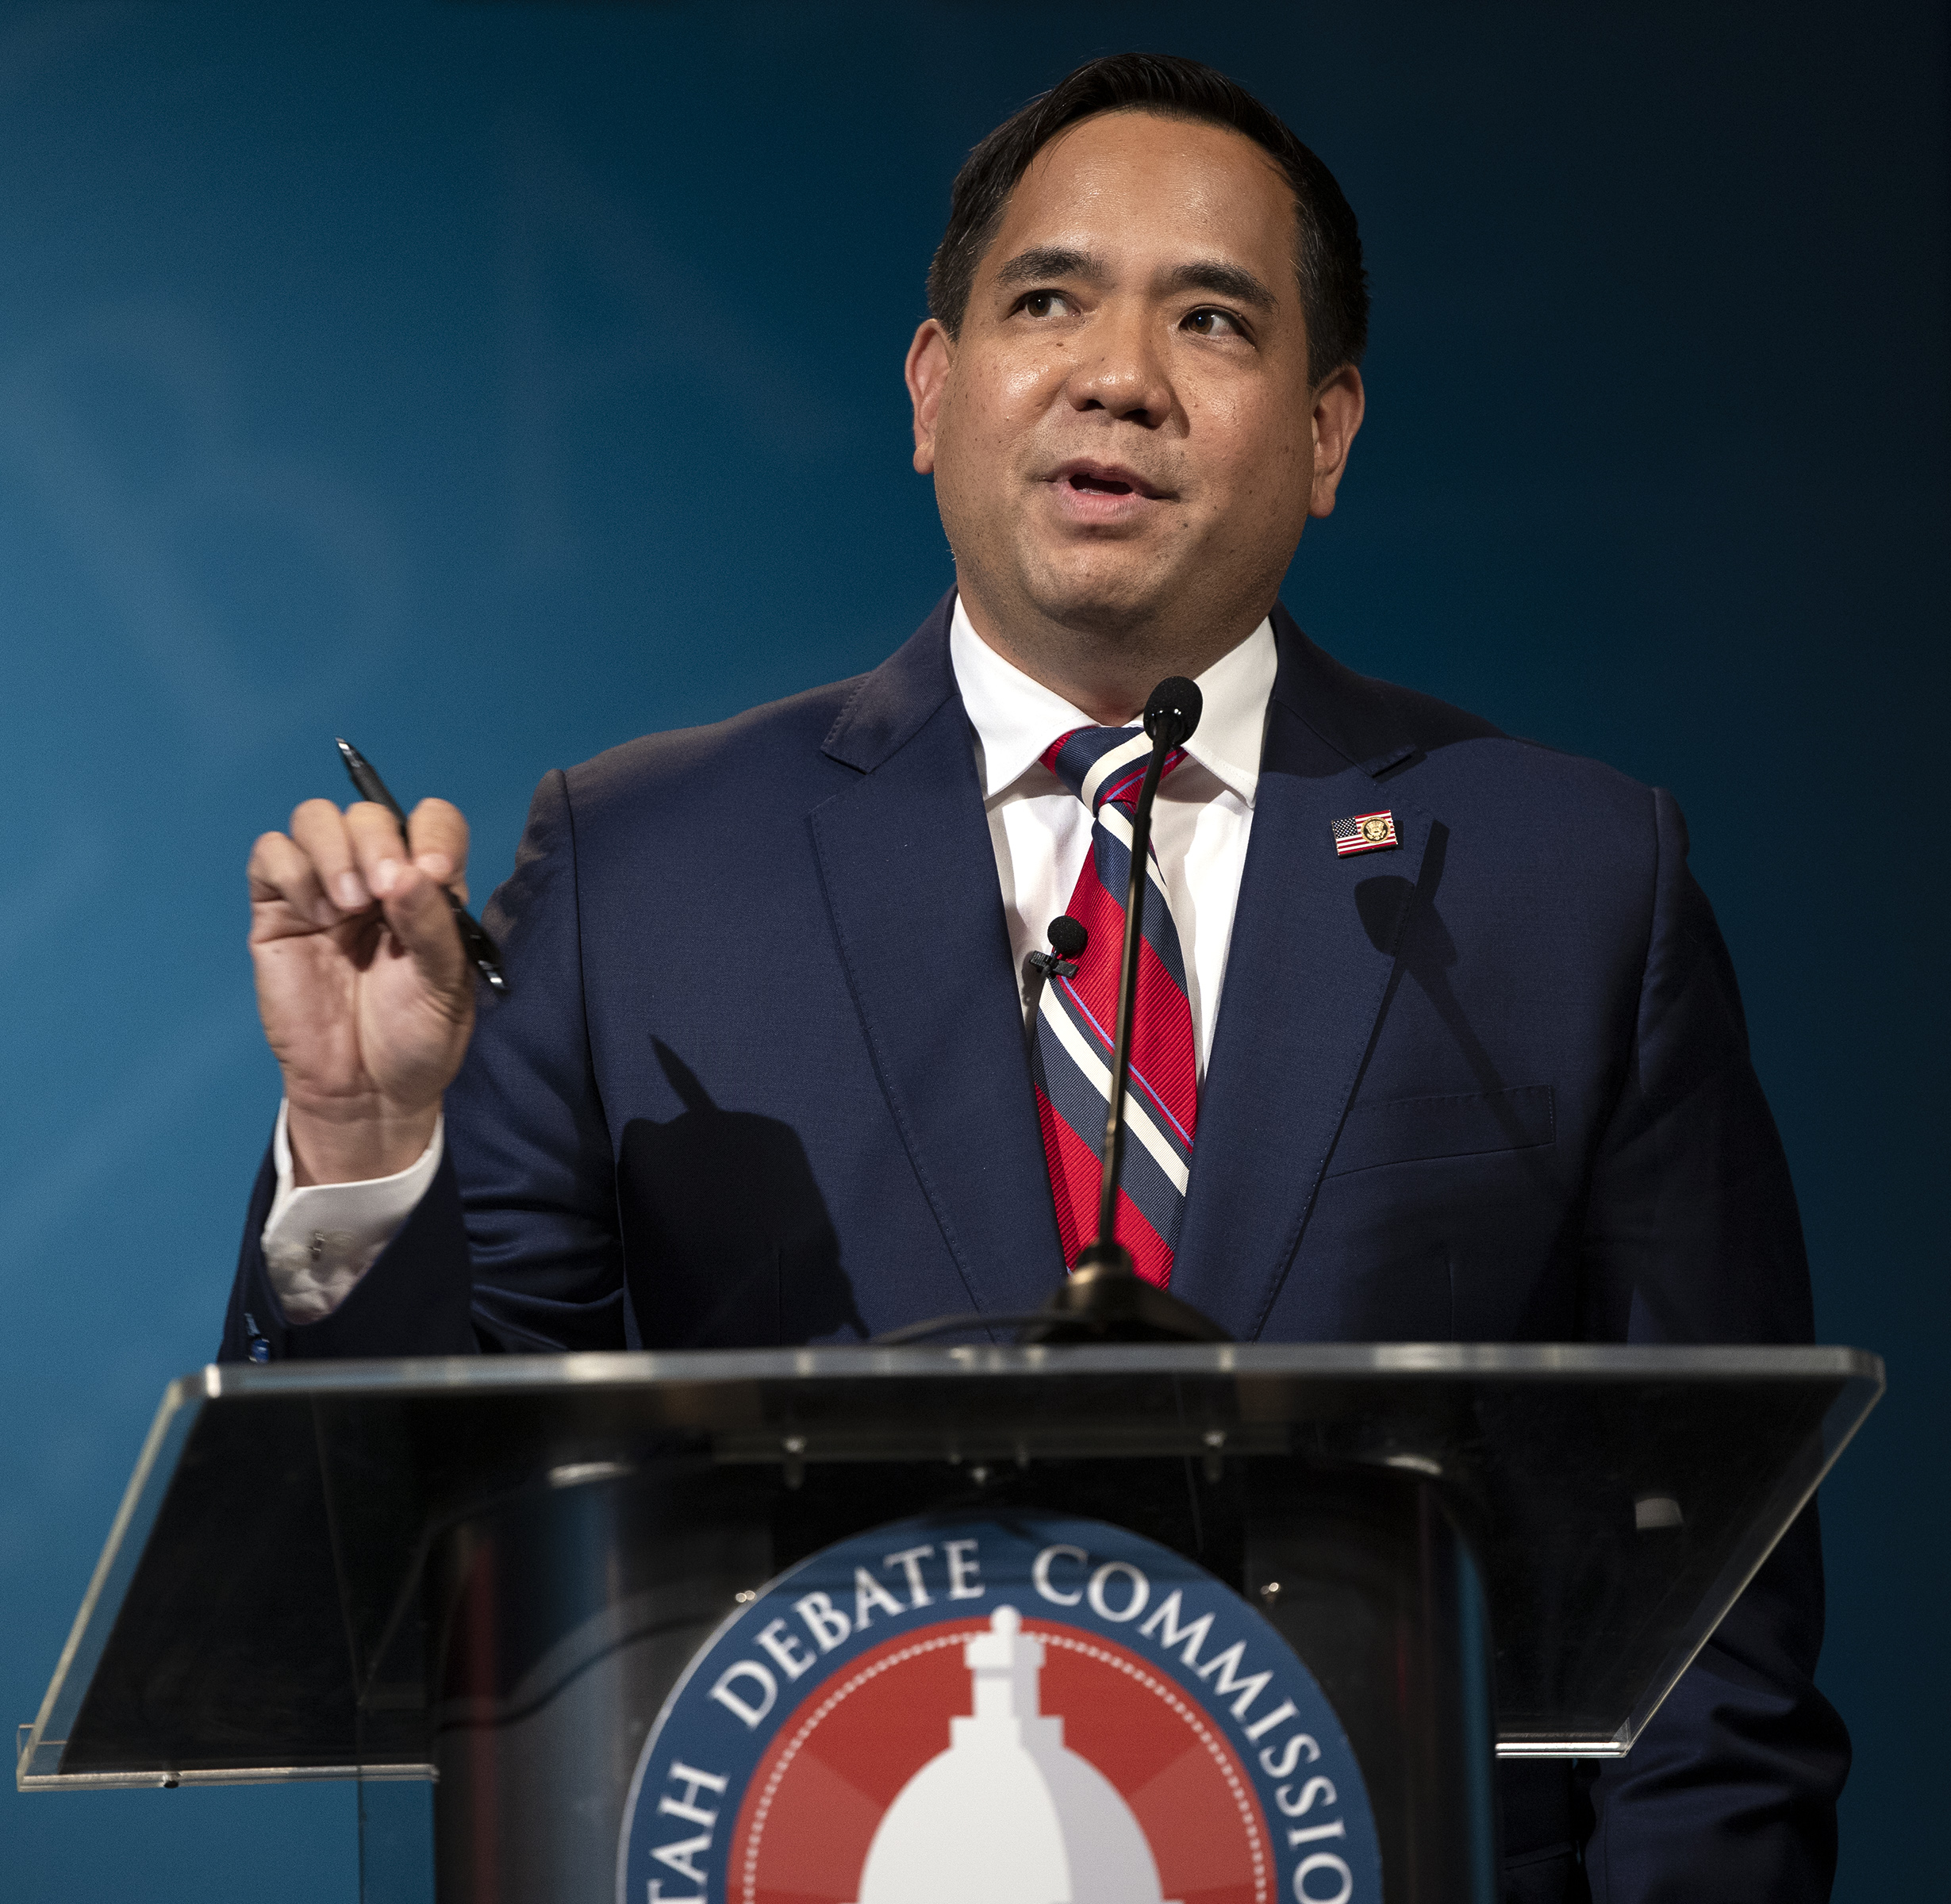 Utah Attorney General Sean Reyesanswers a question during a debate in Salt Lake City on Wednesday, Oct. 21, 2020.